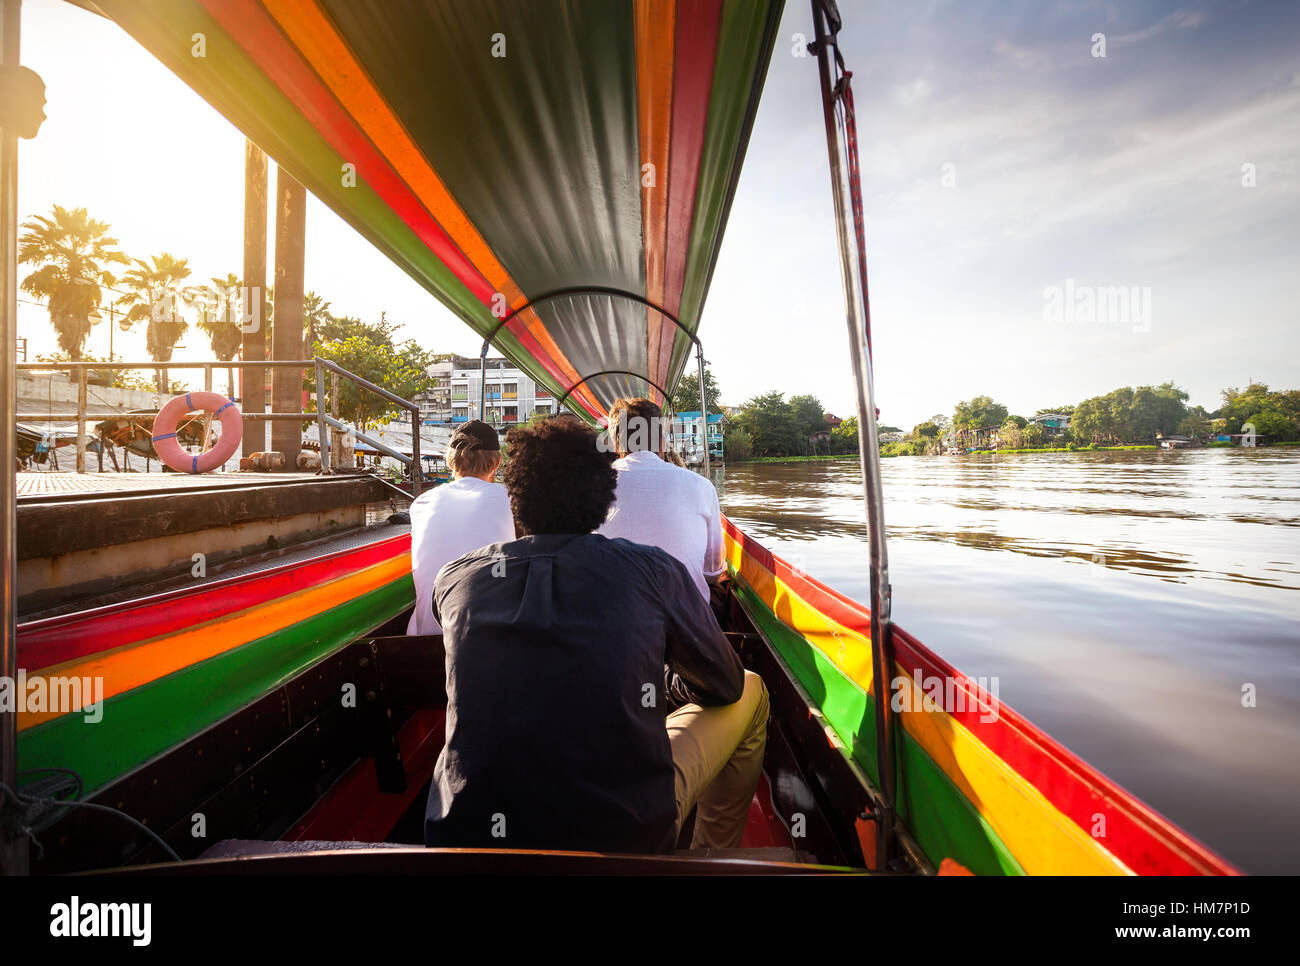 Tourist sitting in long-tail boat cruise by Chao Phraya river in Ancient city Ayutthaya at Sunset, Thailand Stock Photo